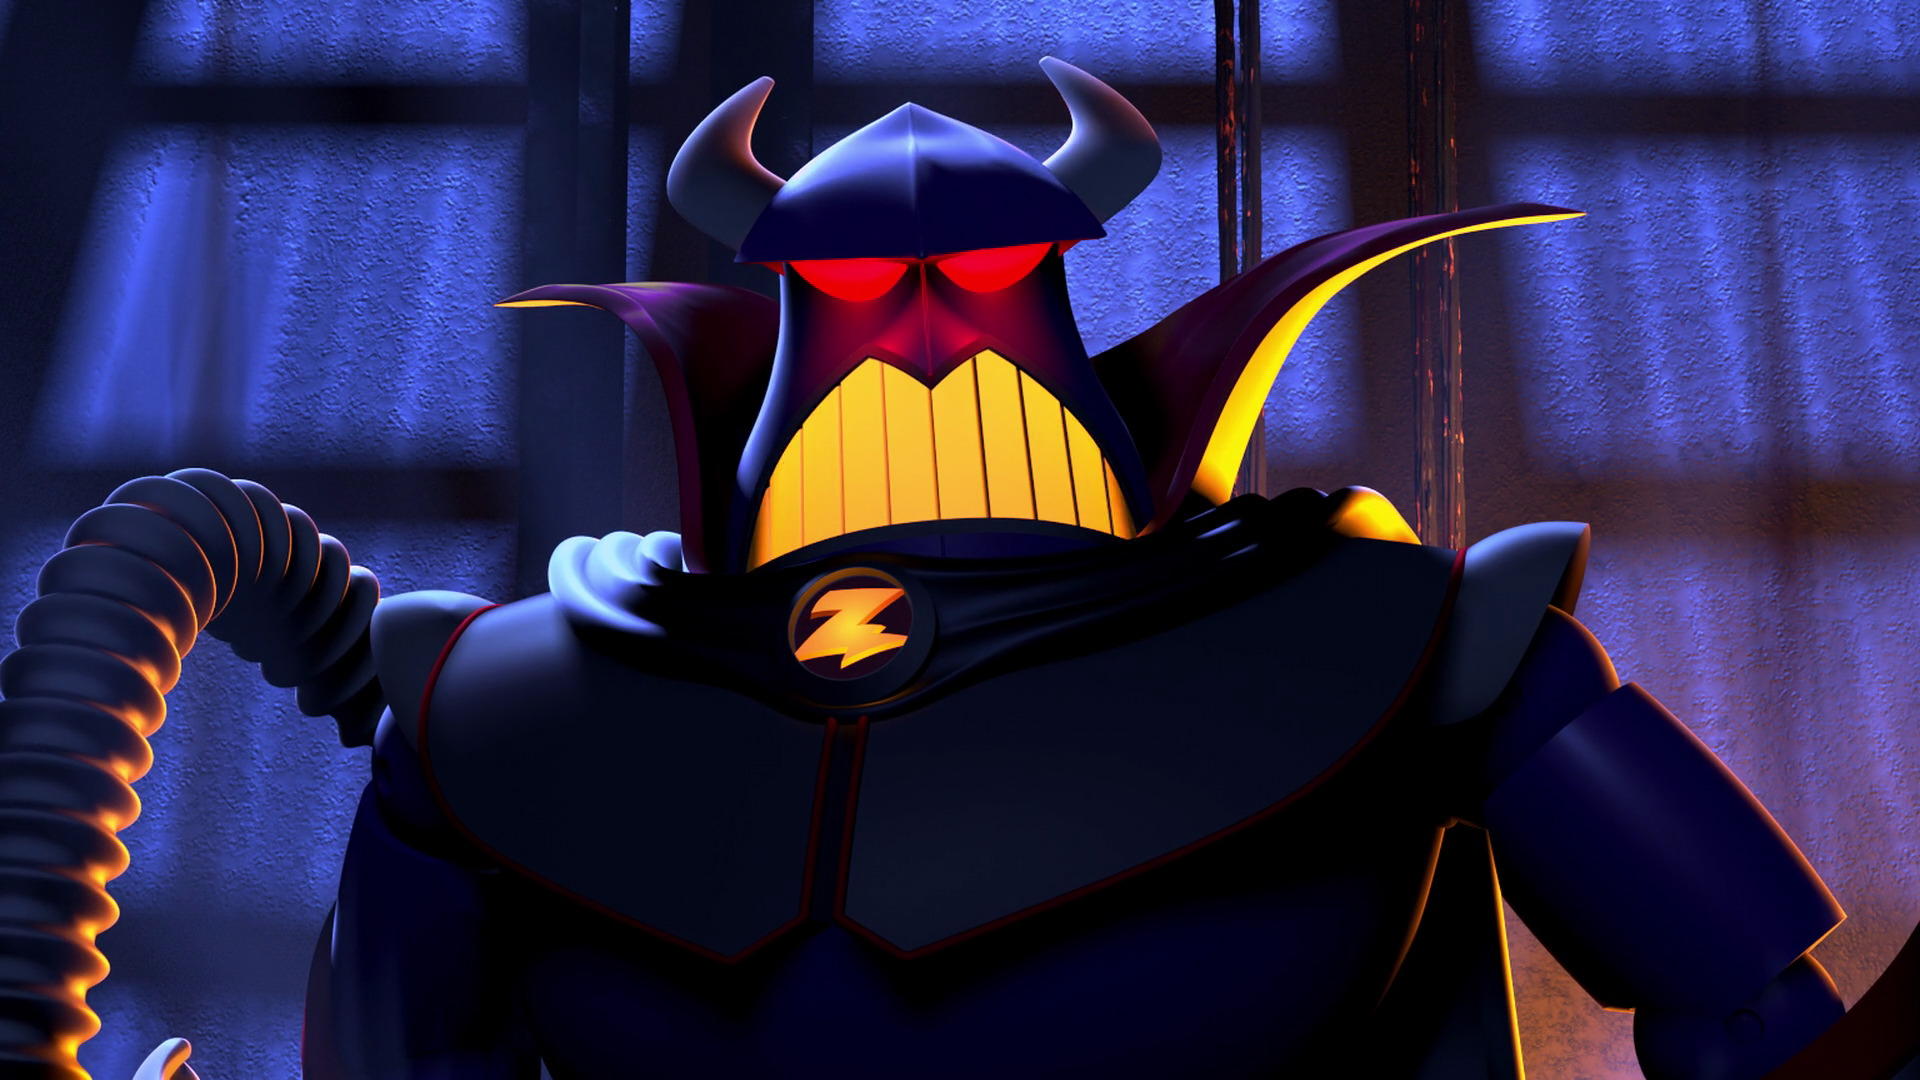 zurg-personnage-toy-story-2-02